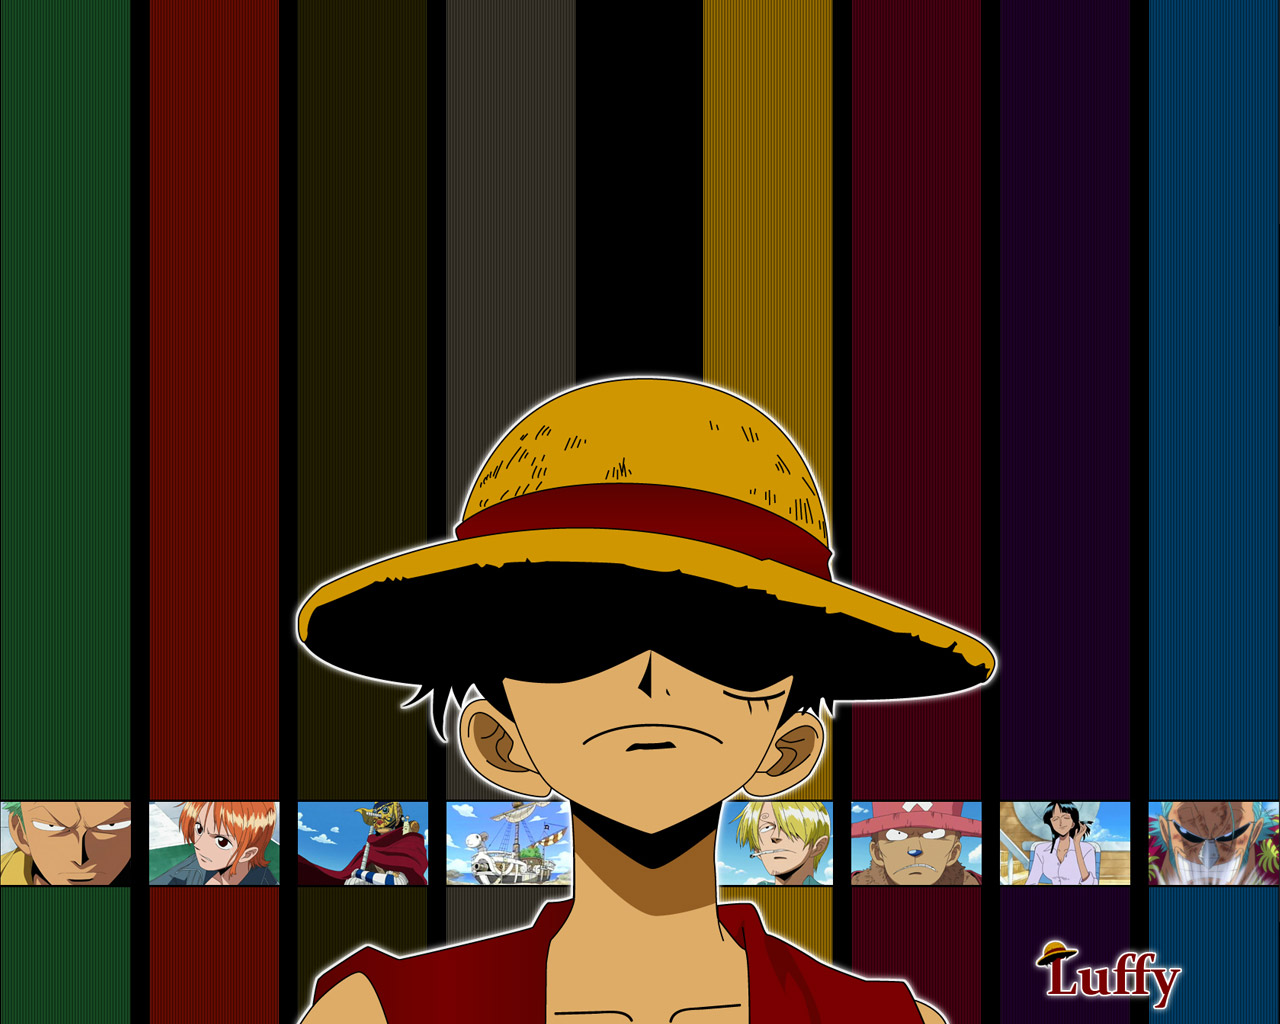 Luffy Angry One Piece Aokiji User Galleries Anime Wallpaper